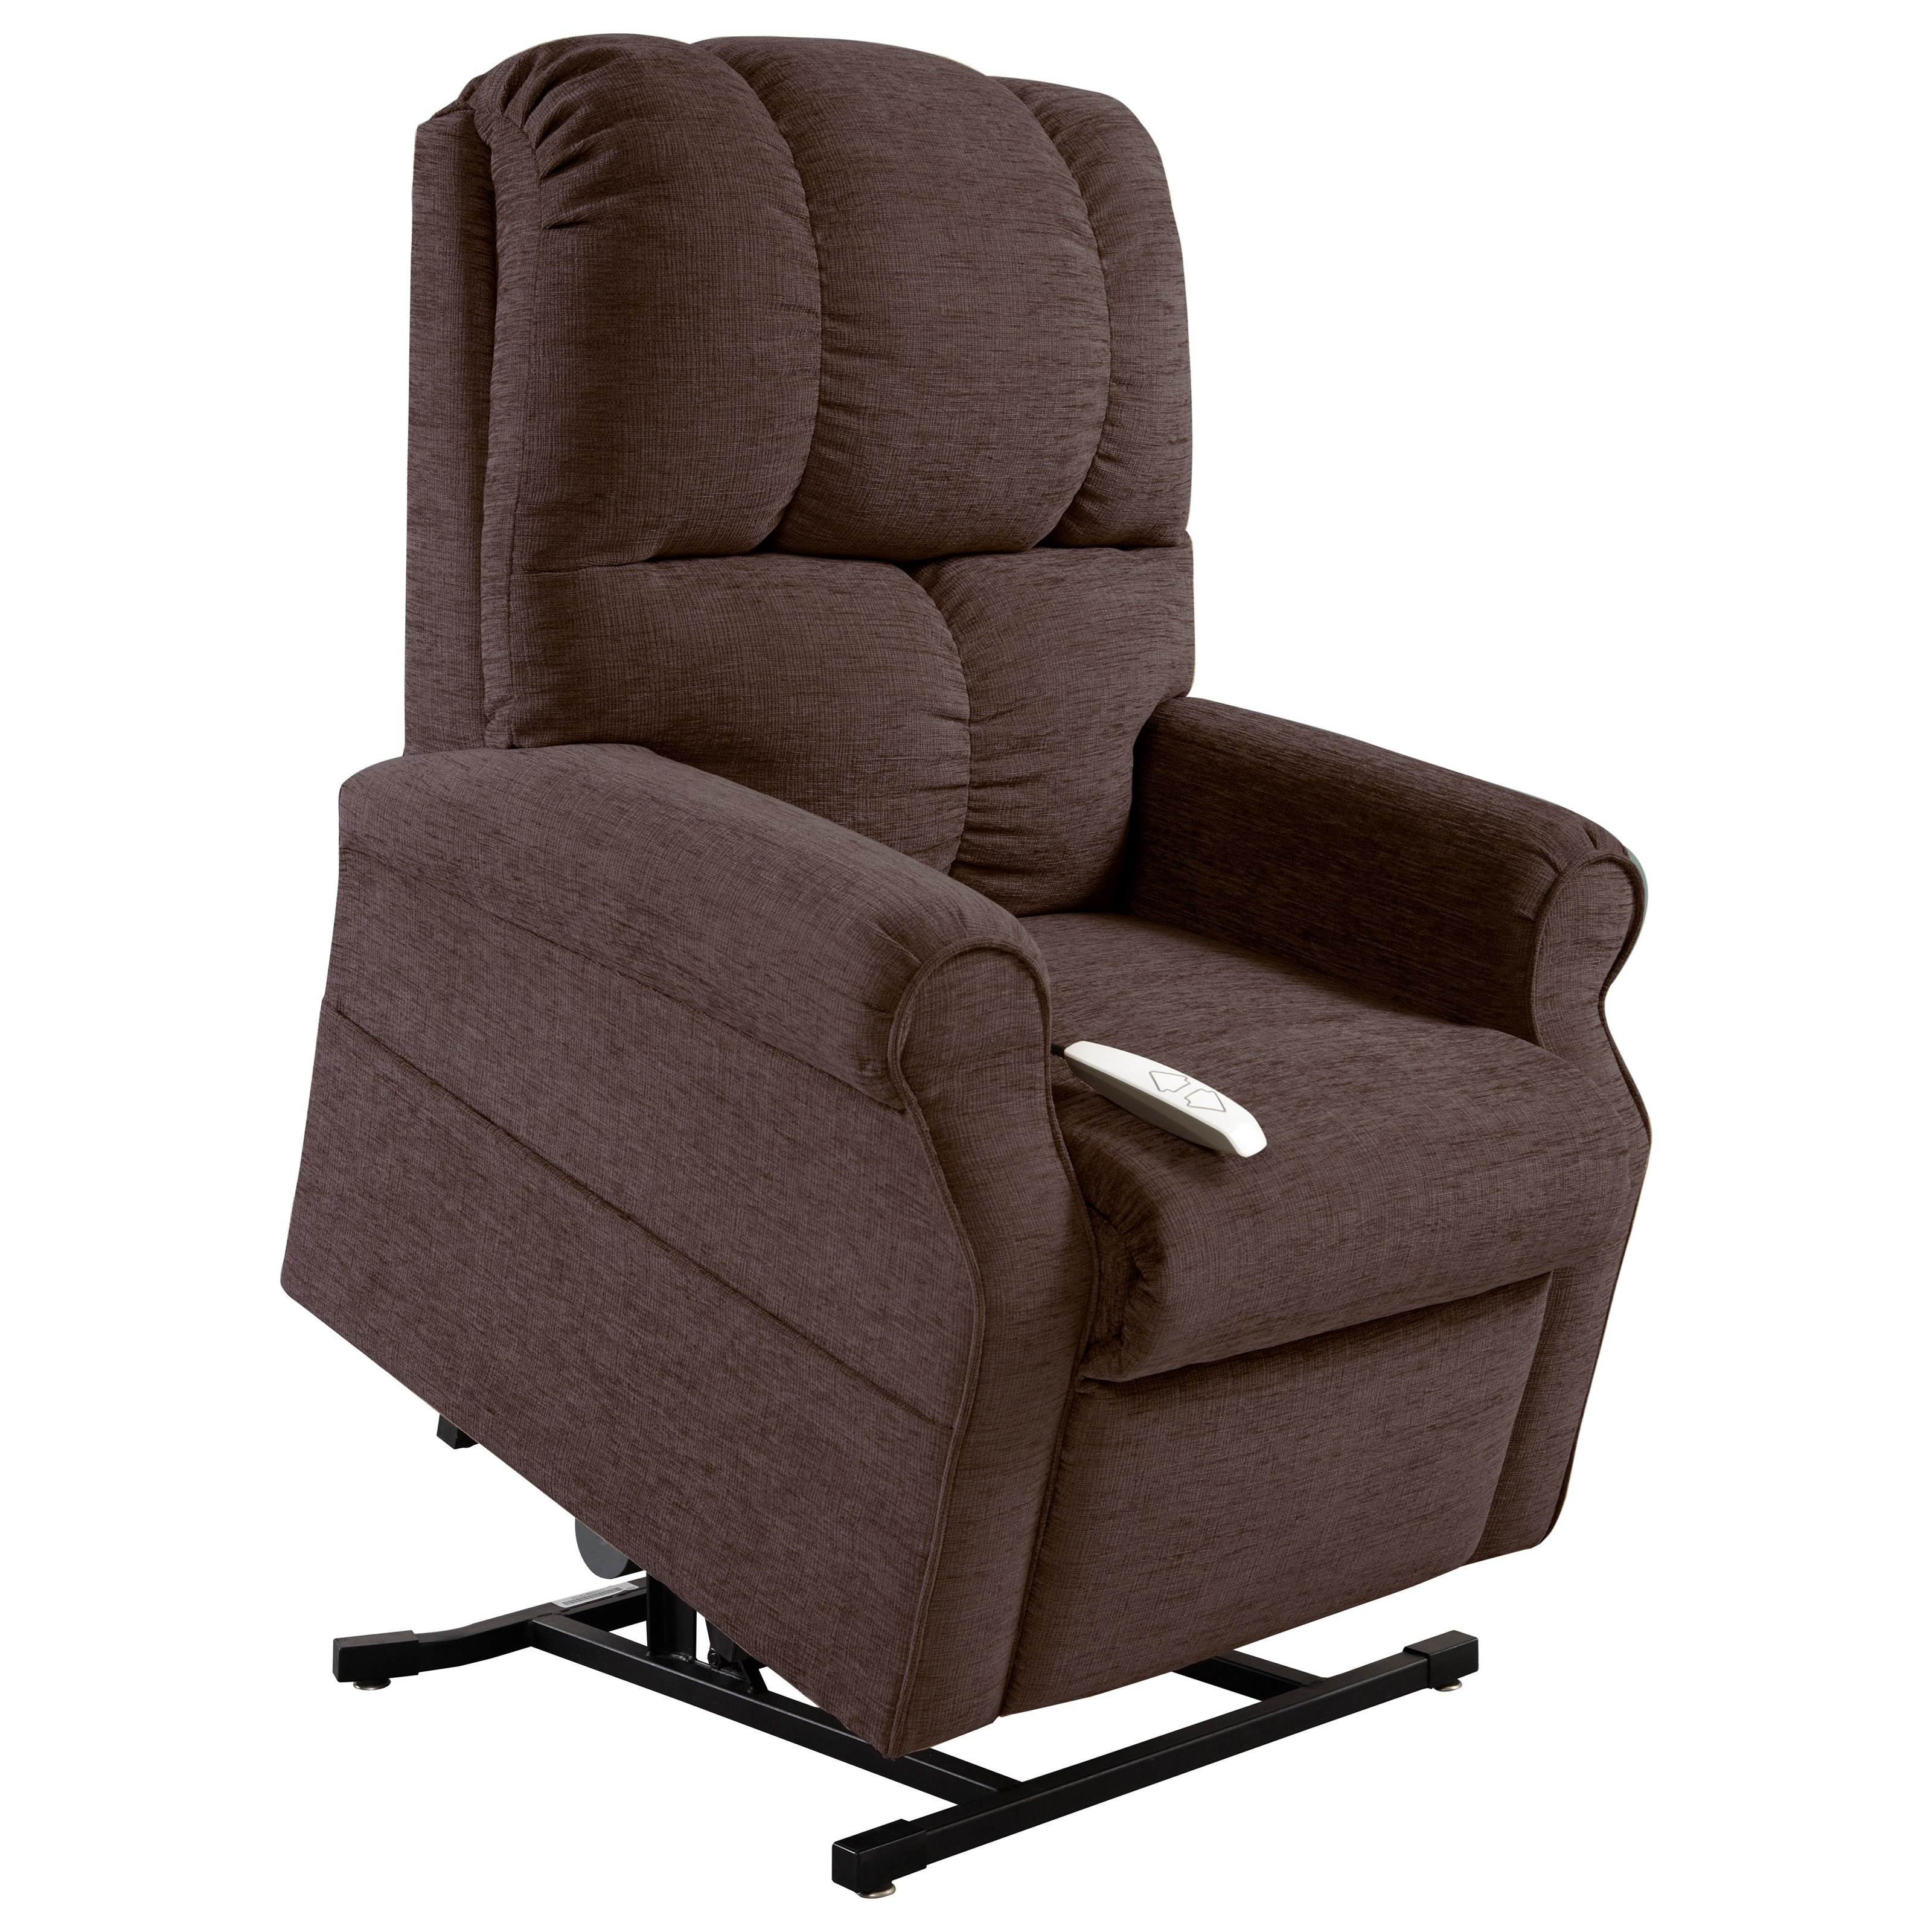 Windermere Motion Lift Chairs Celestial 3 Position